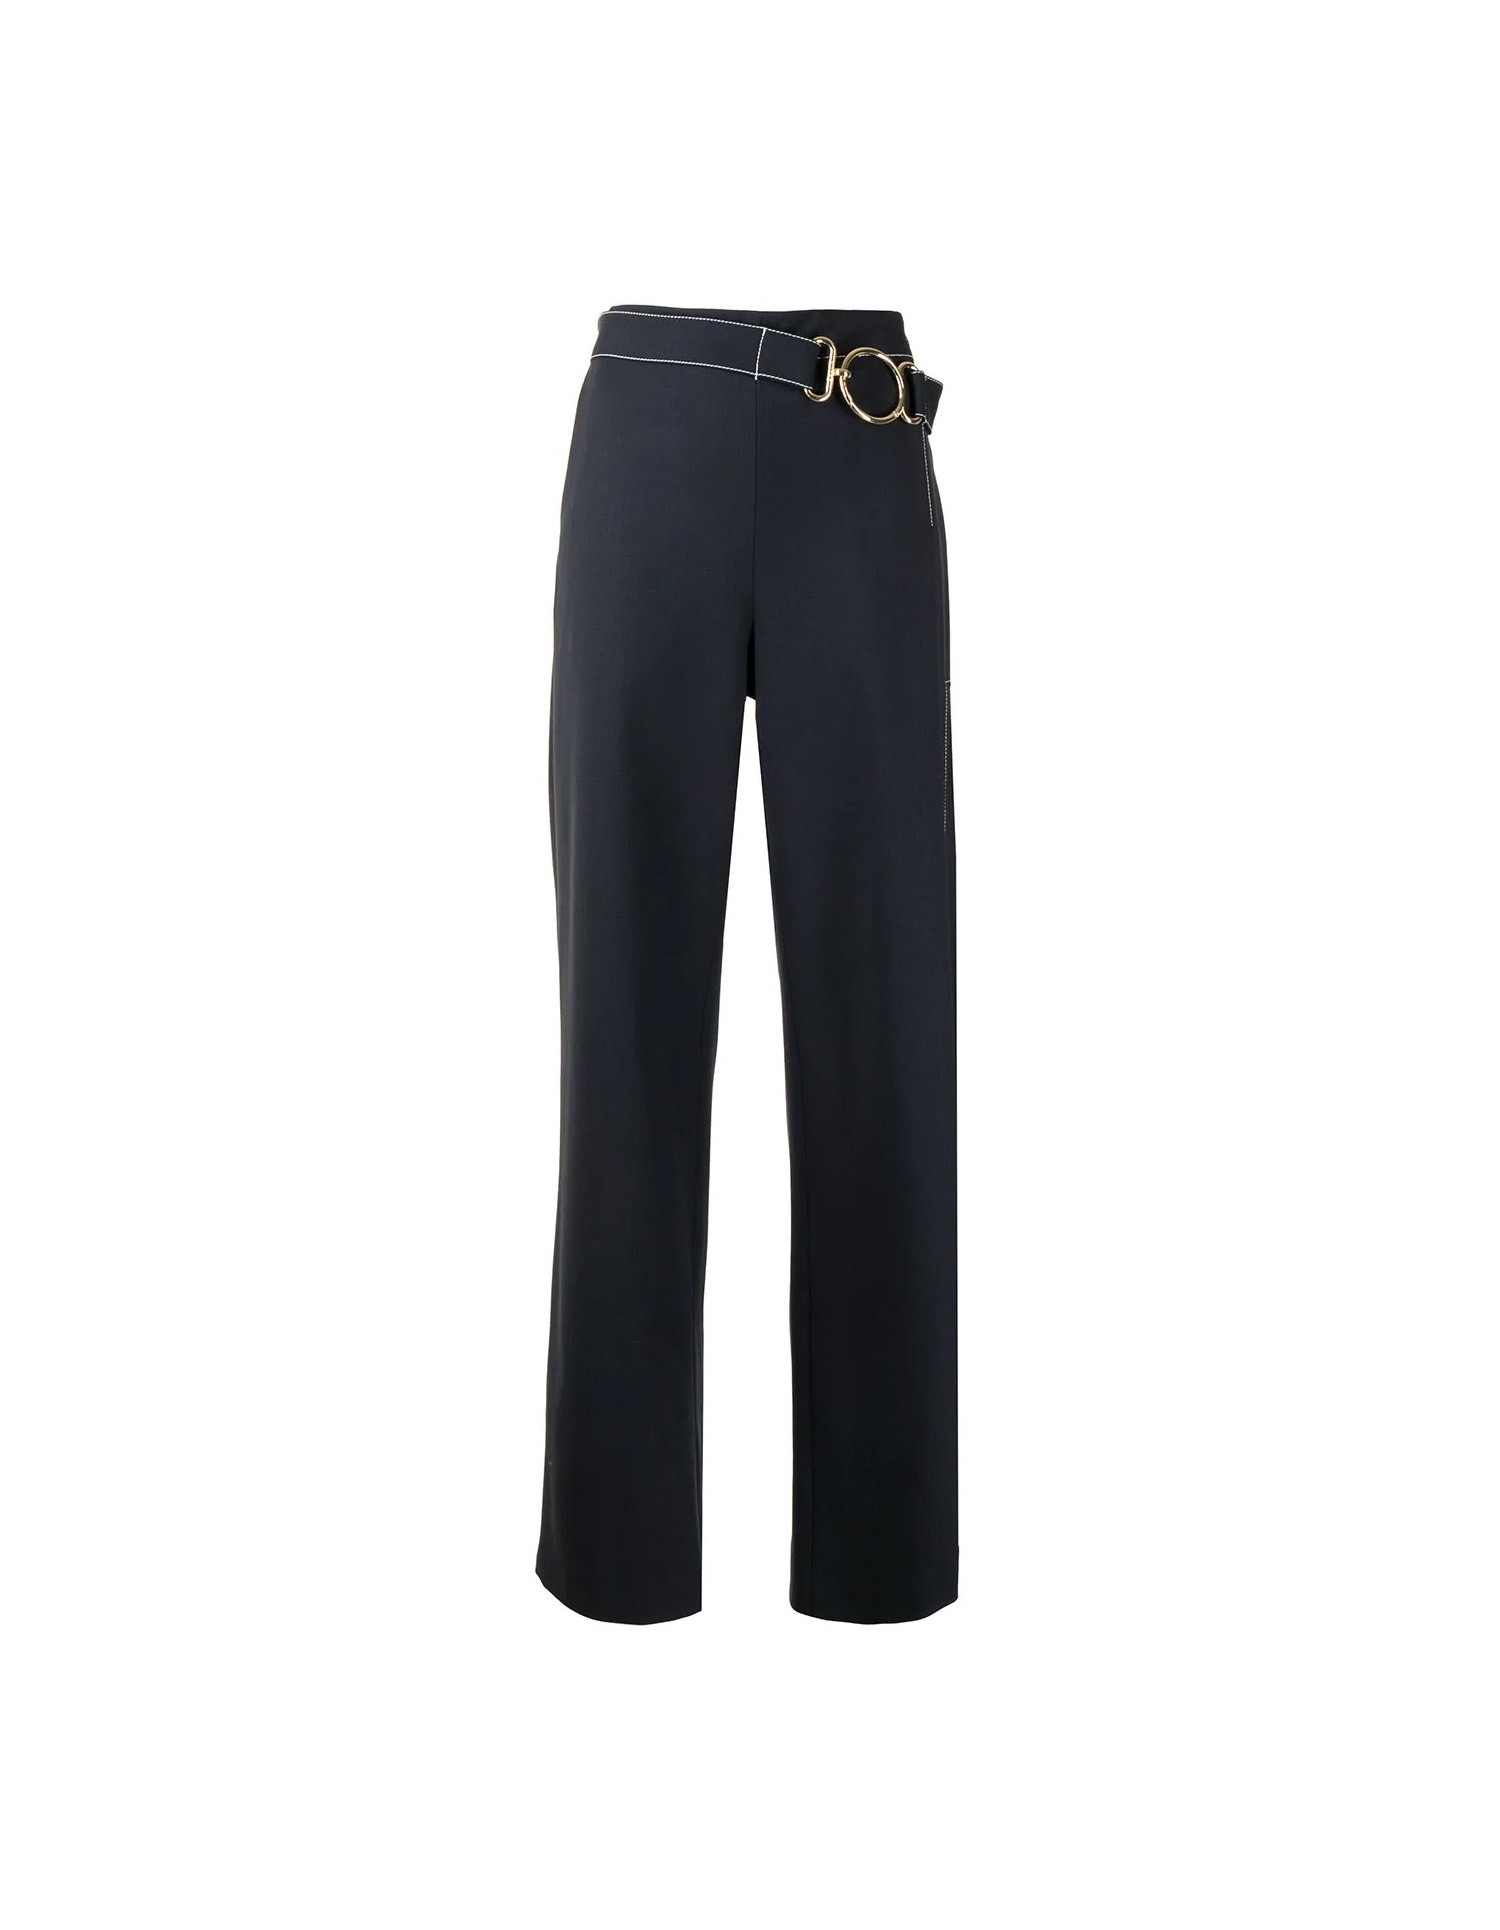 MONSE Vented Wide Leg Pant in Midnight Flat Front